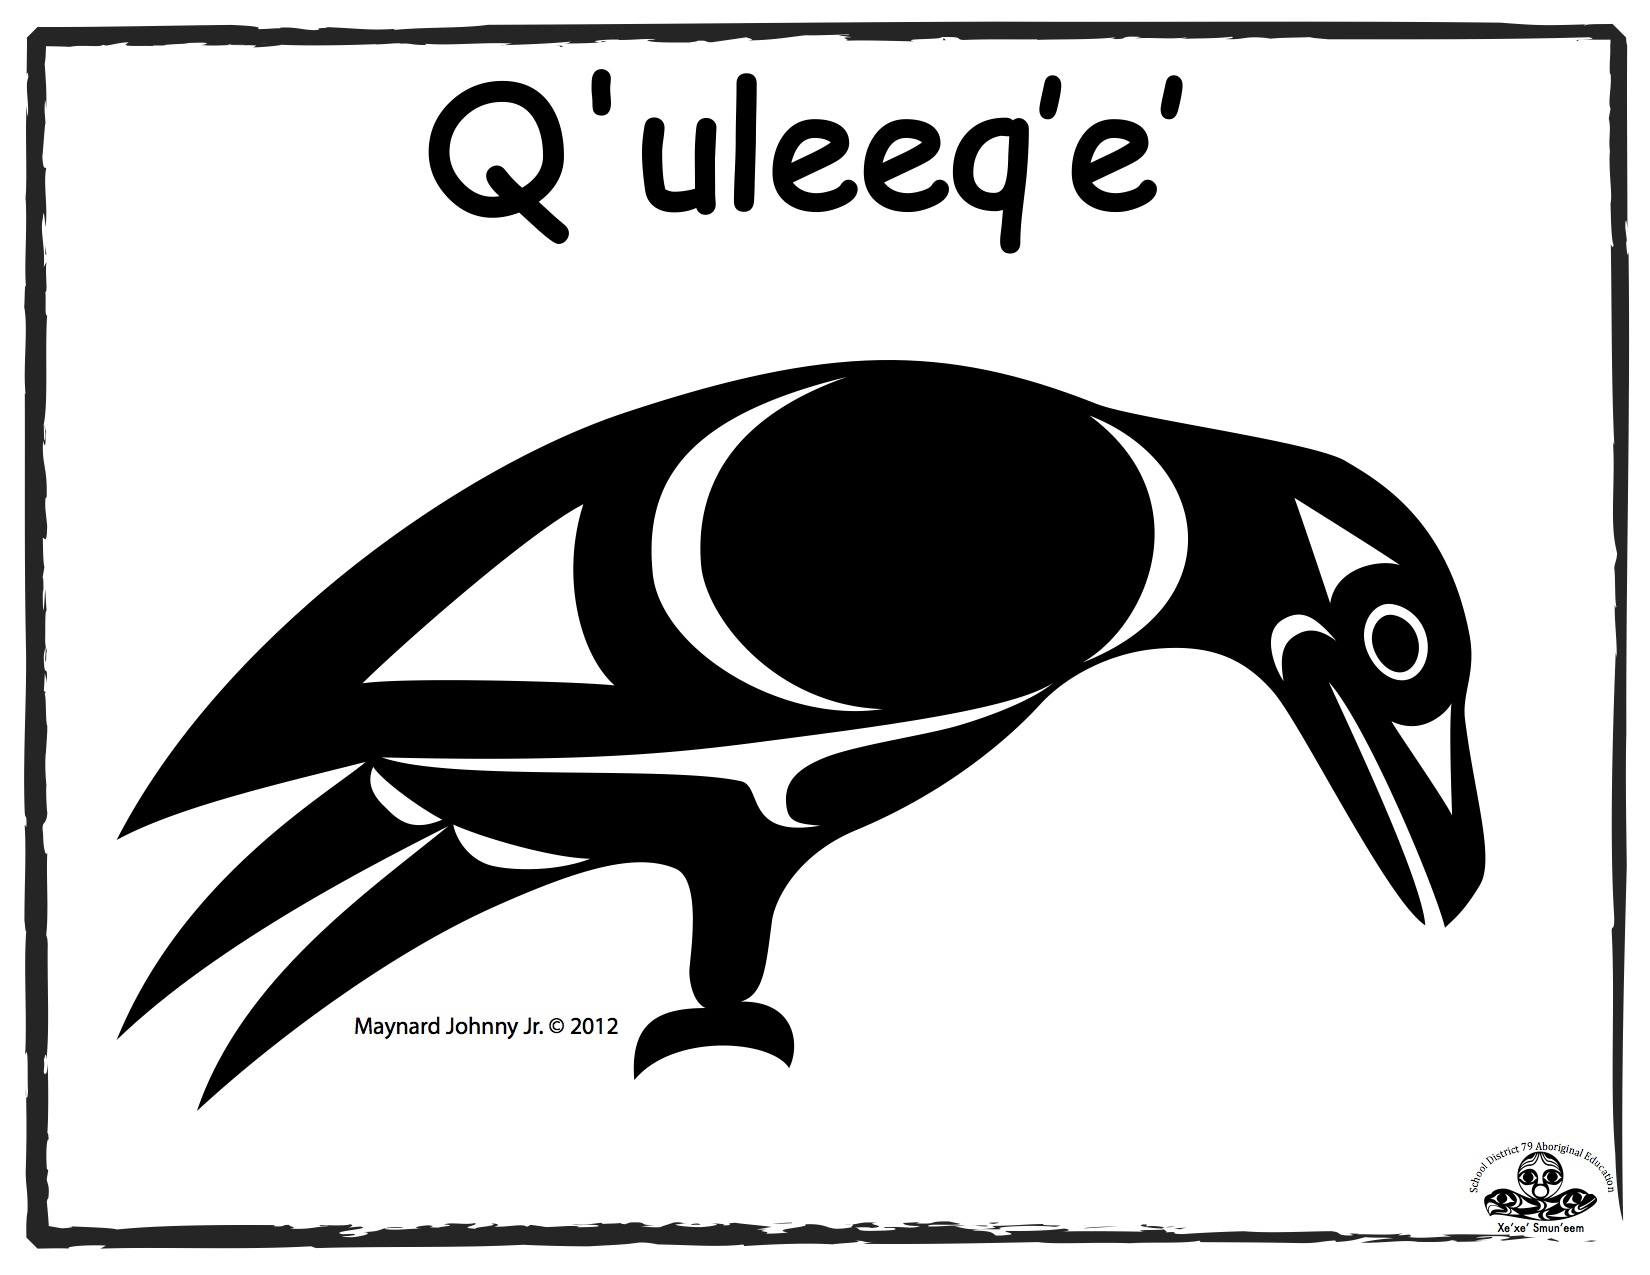 crow-quleeqe-basic